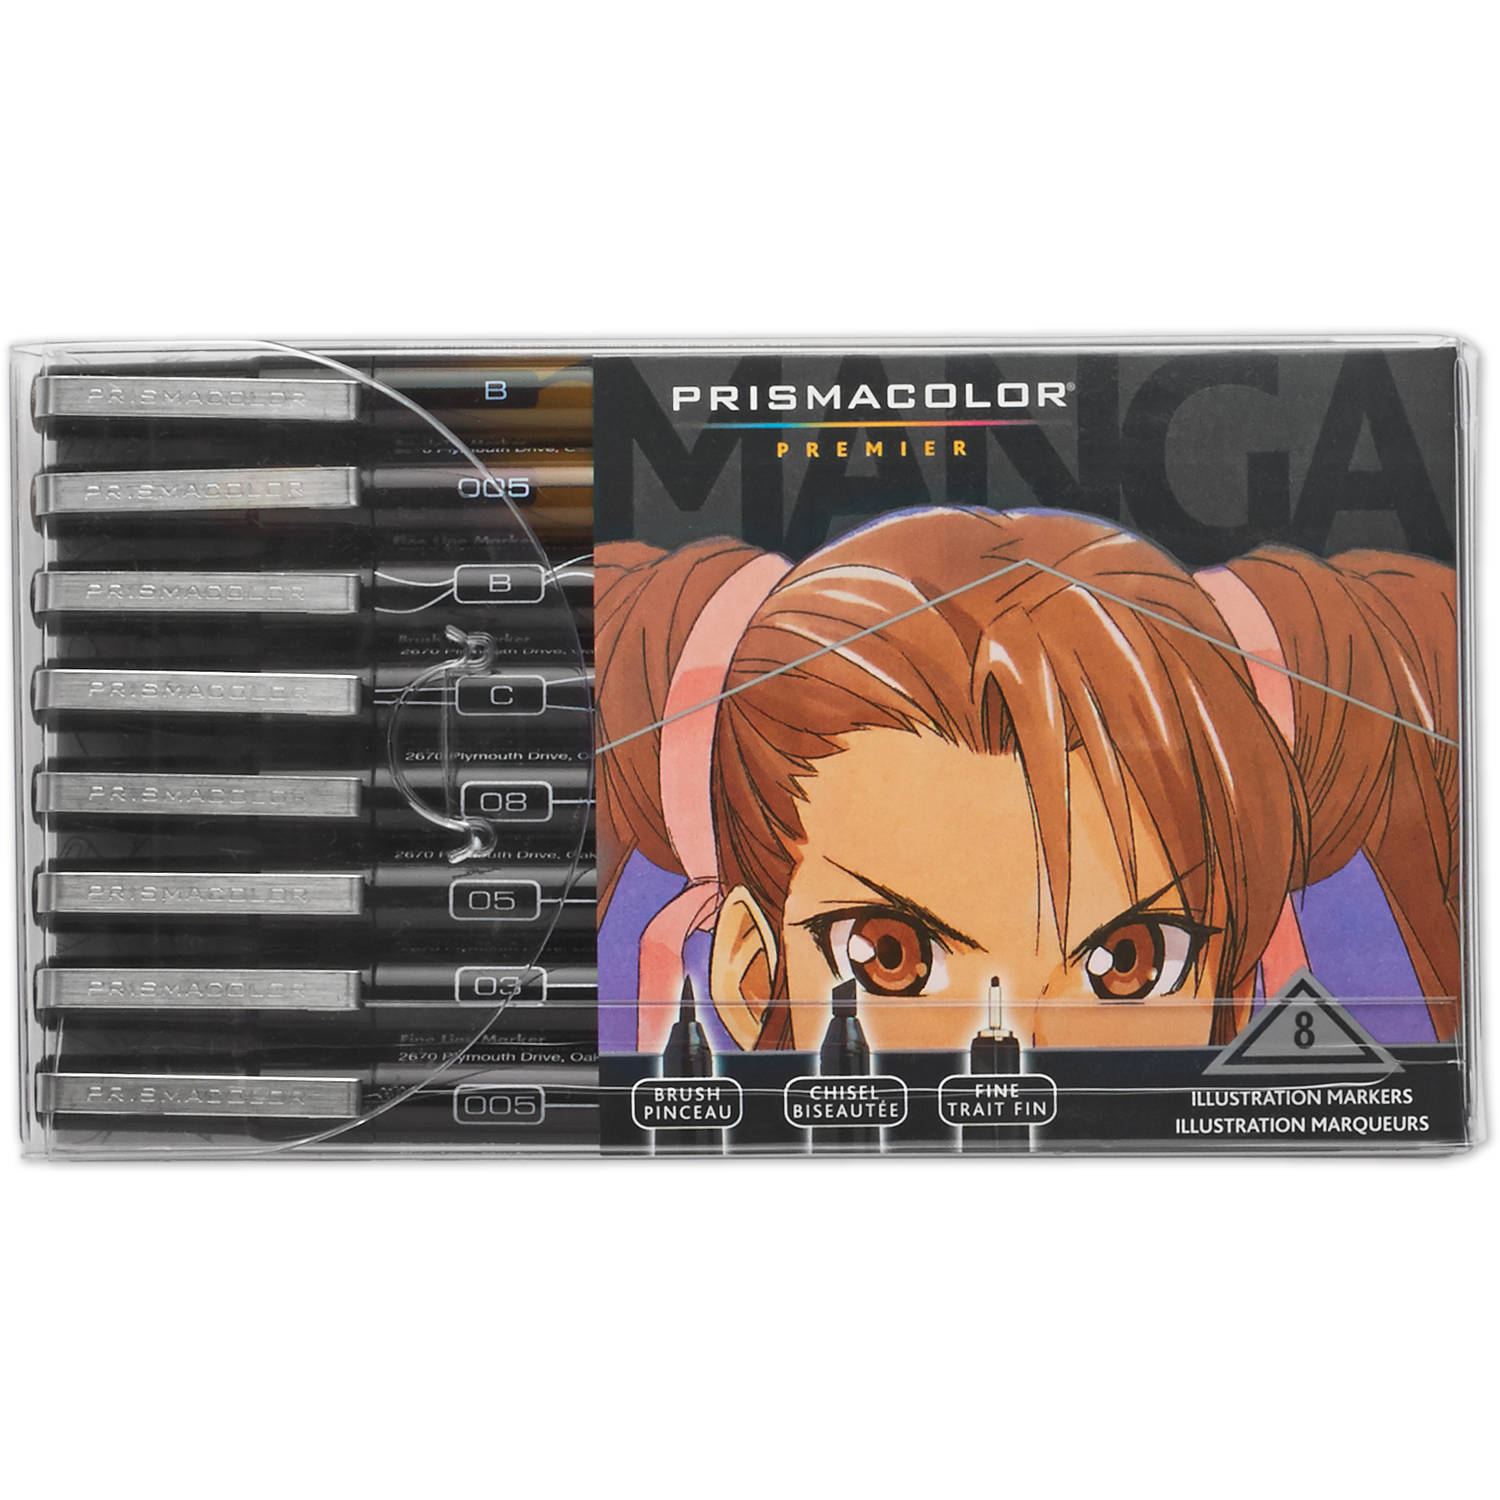 Prismacolor Premier Manga Illustration Markers, Assorted Tips, Black and Sepia, 8-Pack